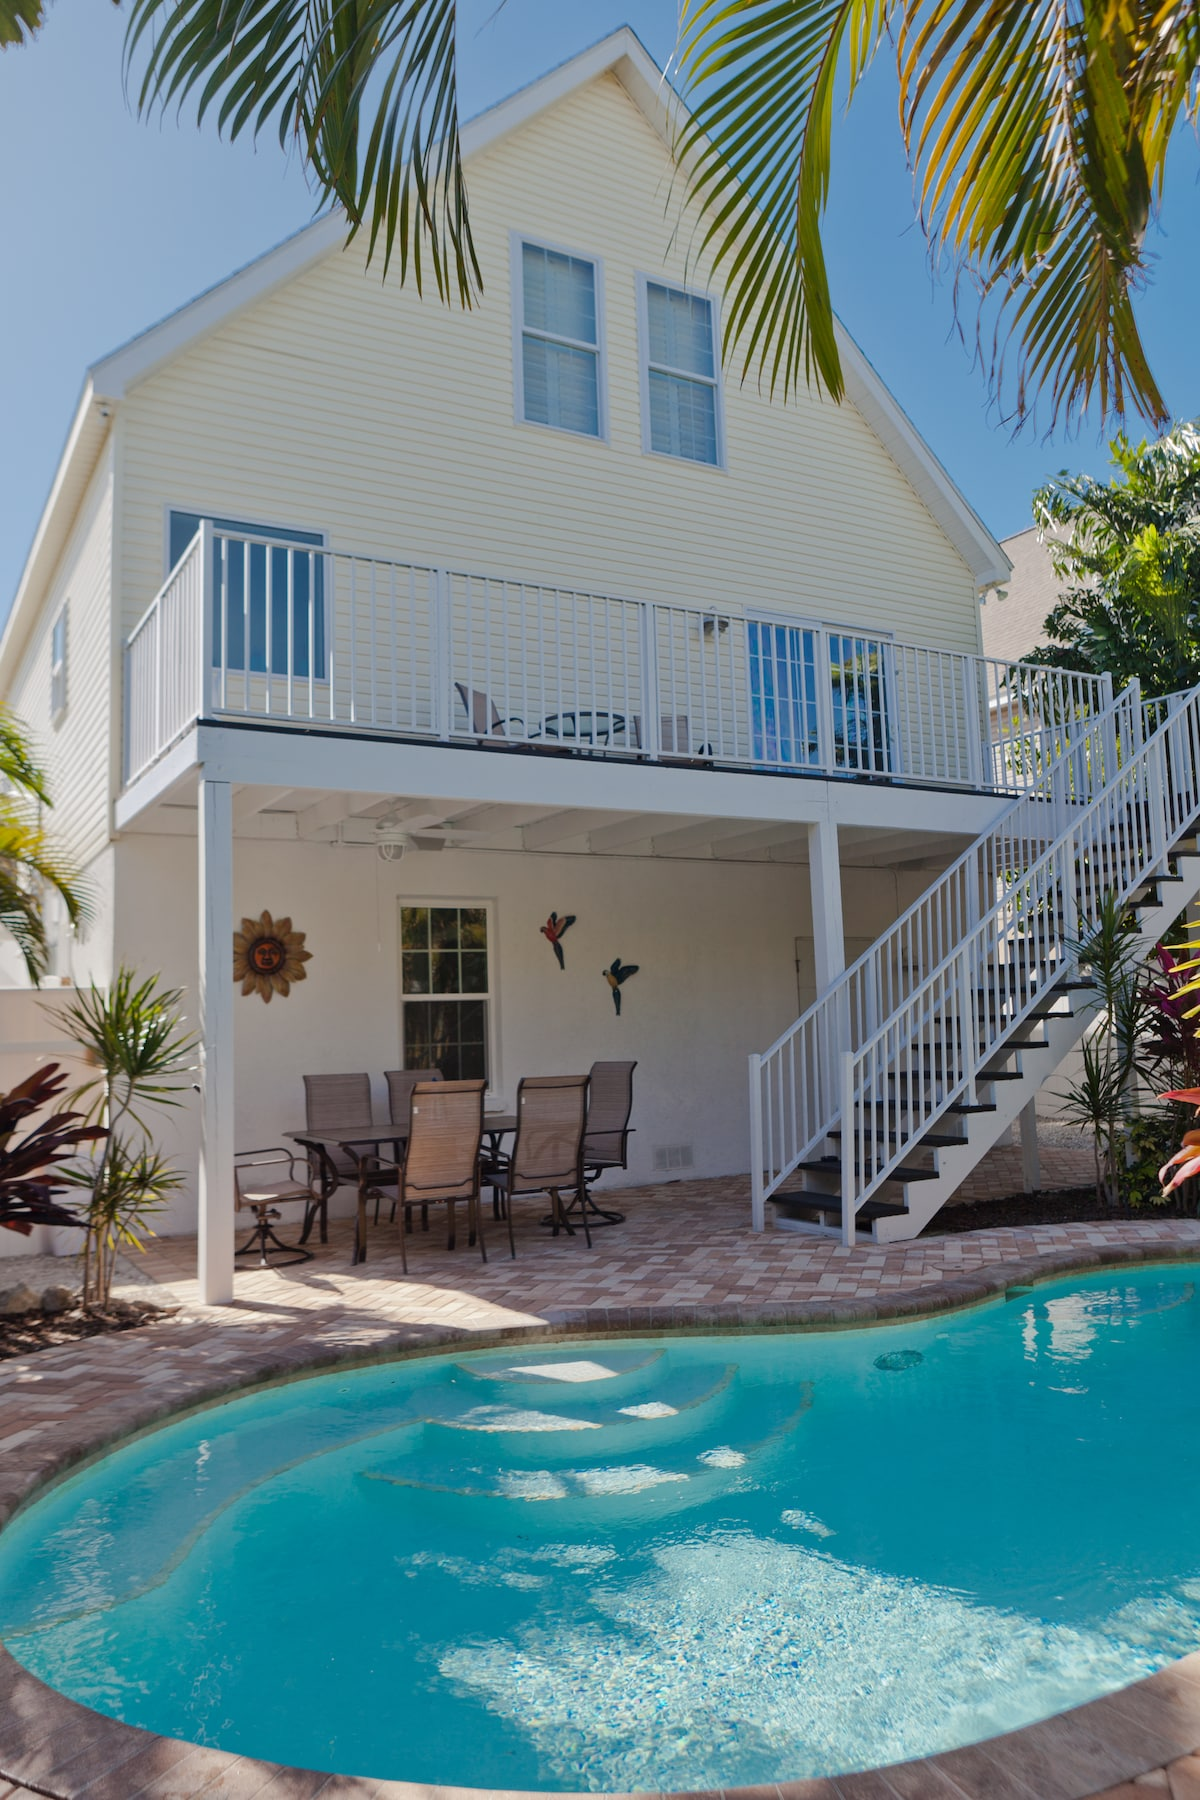 Private heated pool and a spacious seating area with an outdoor table set for 6